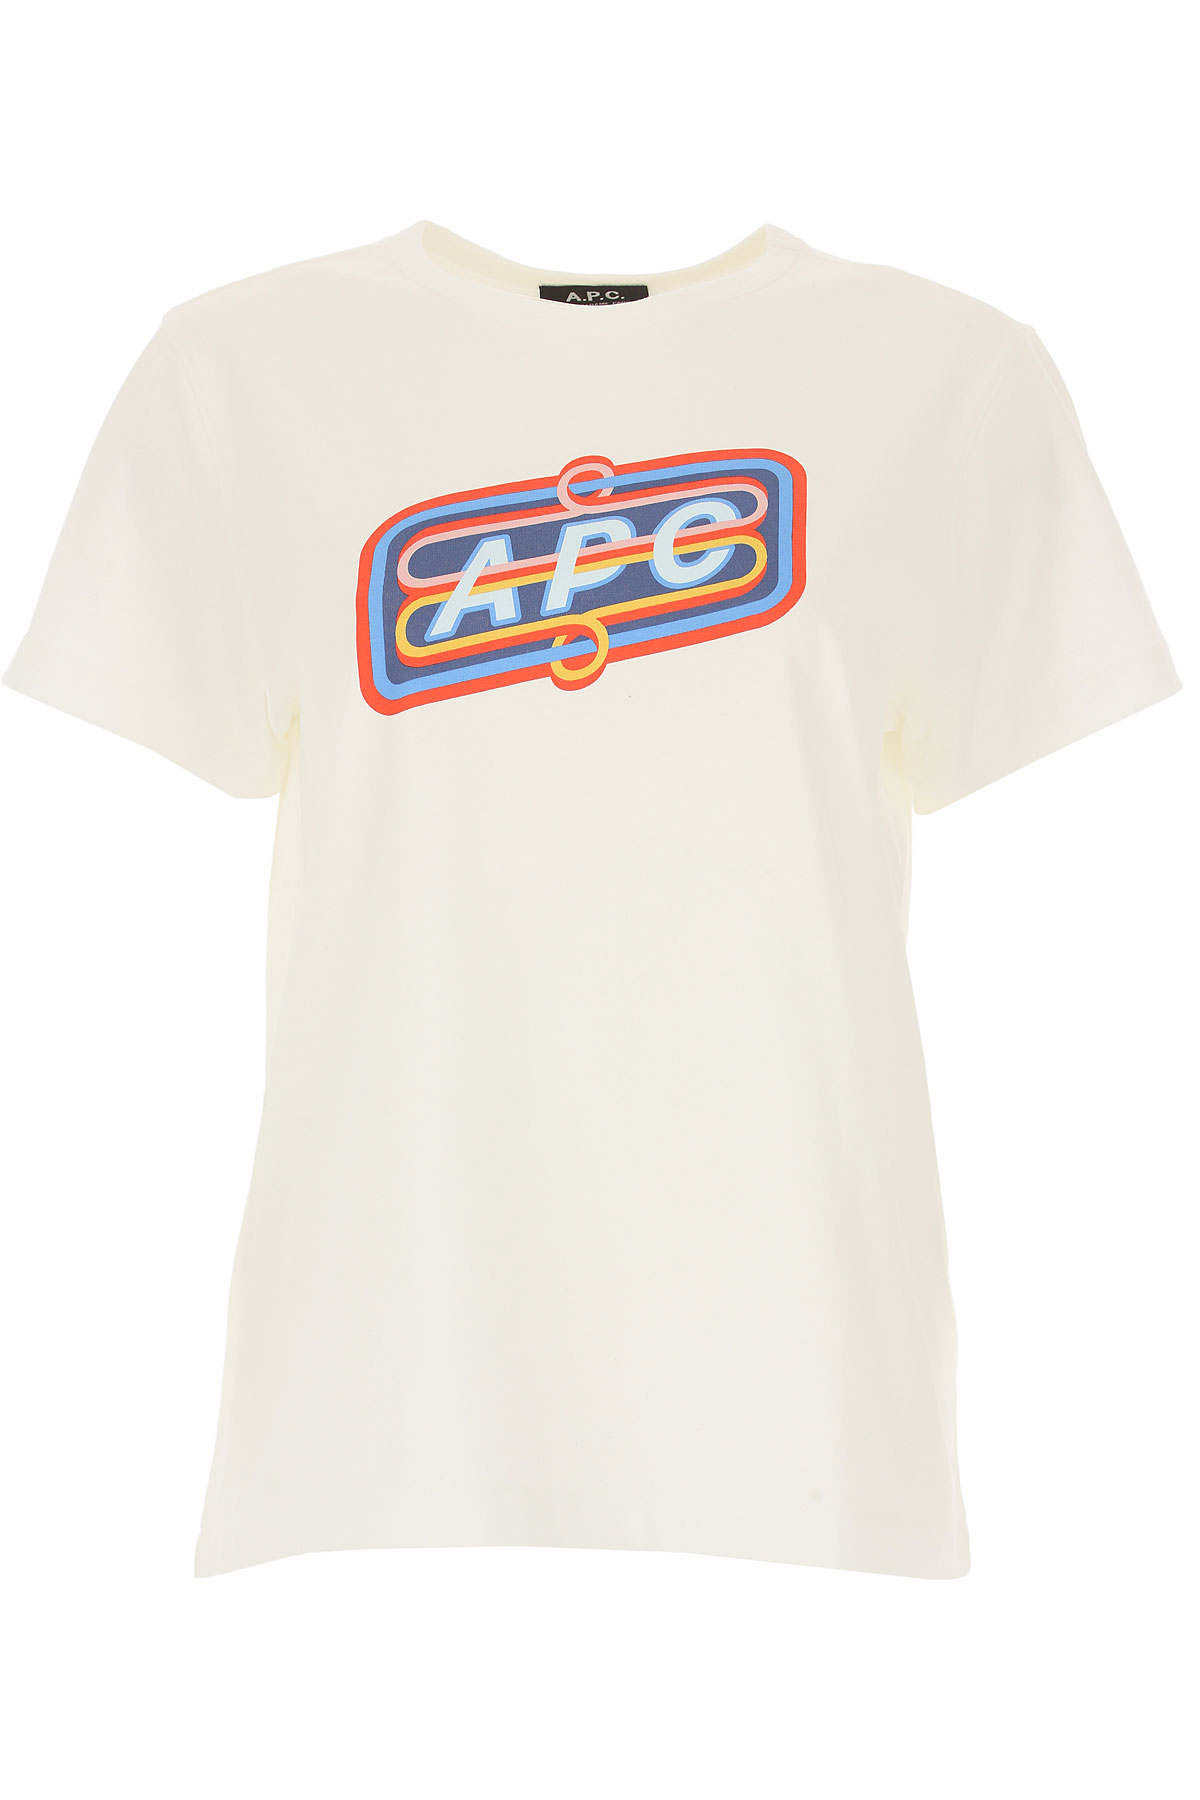 Image of A.P.C T-Shirt for Women, White, Cotton, 2017, 4 6 8